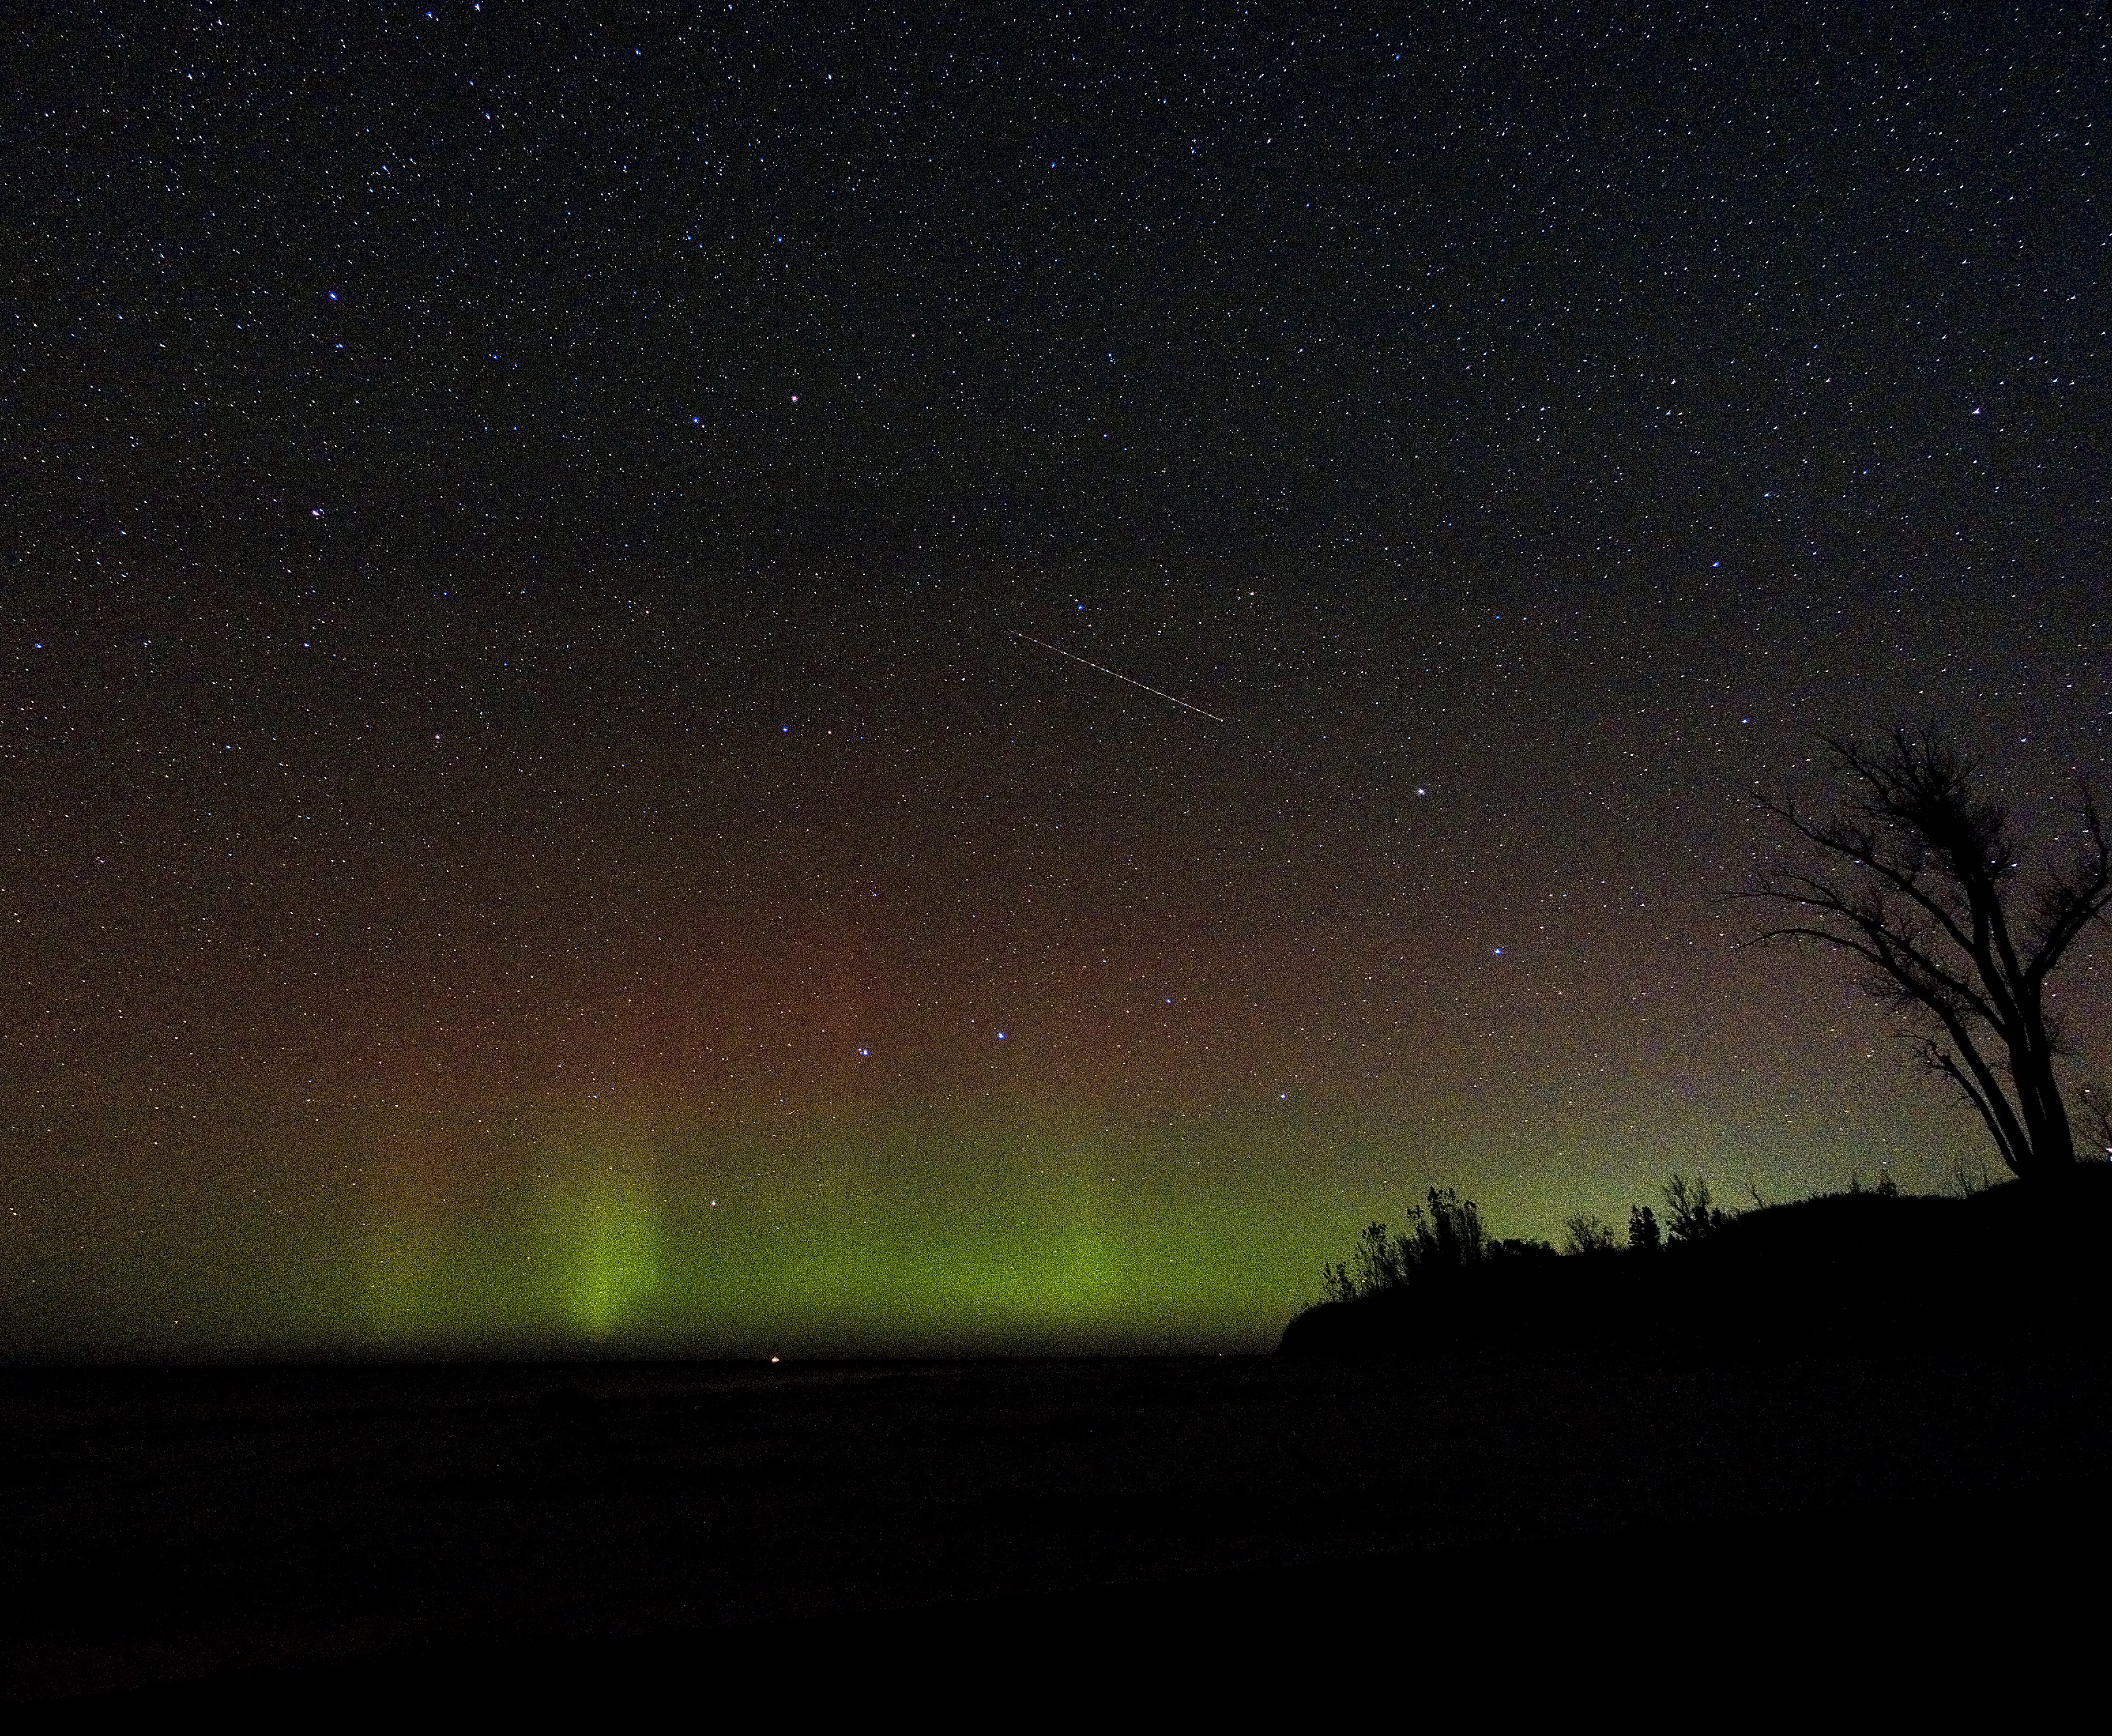 Green aurora borealis under a starry sky with a tree silhouetted on the right